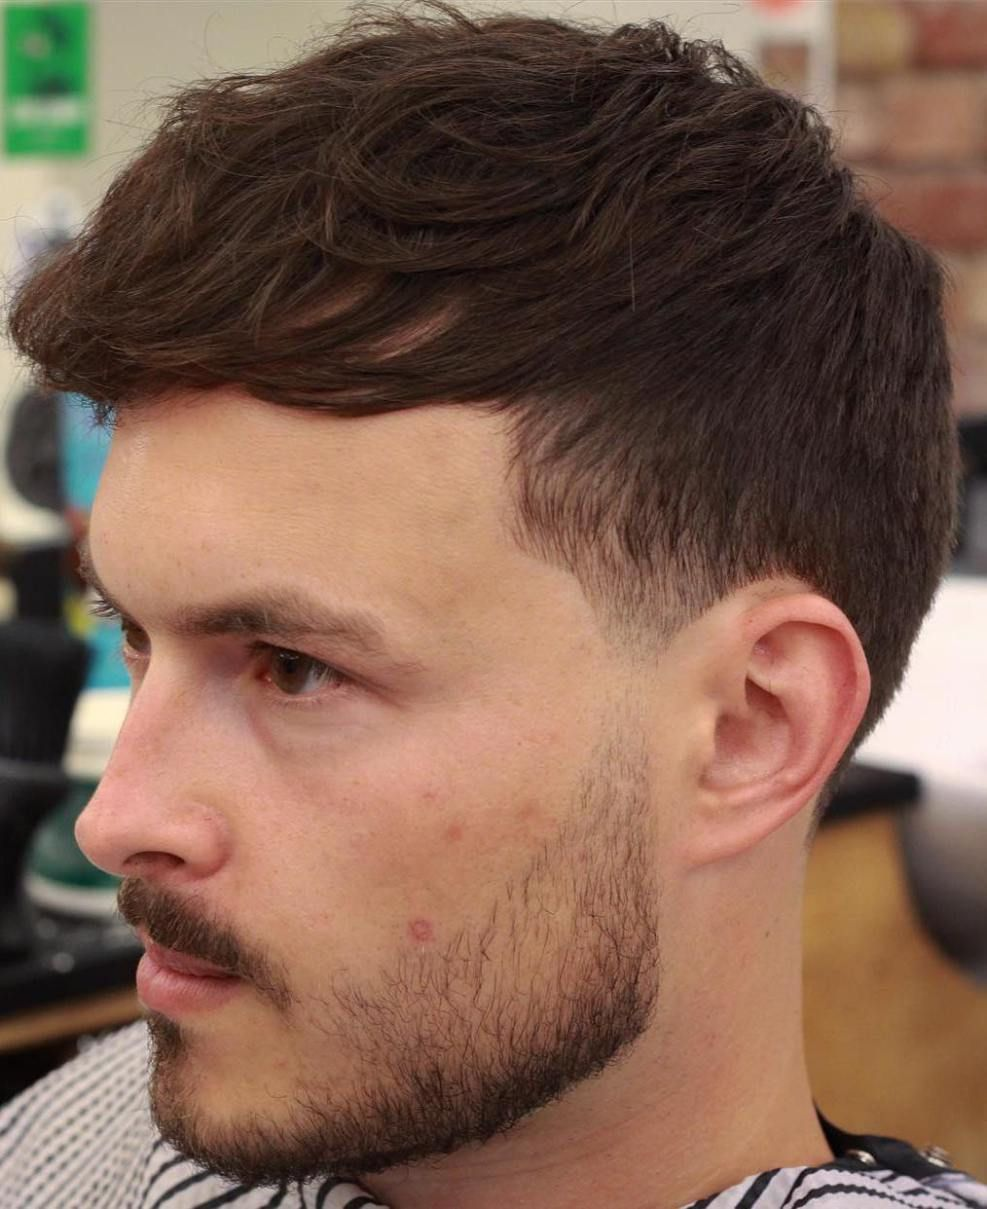 50 Stylish Hairstyles For Men With Thin Hair Mens Hairstyles Undercut Haircuts For Receding Hairline Mens Hairstyles